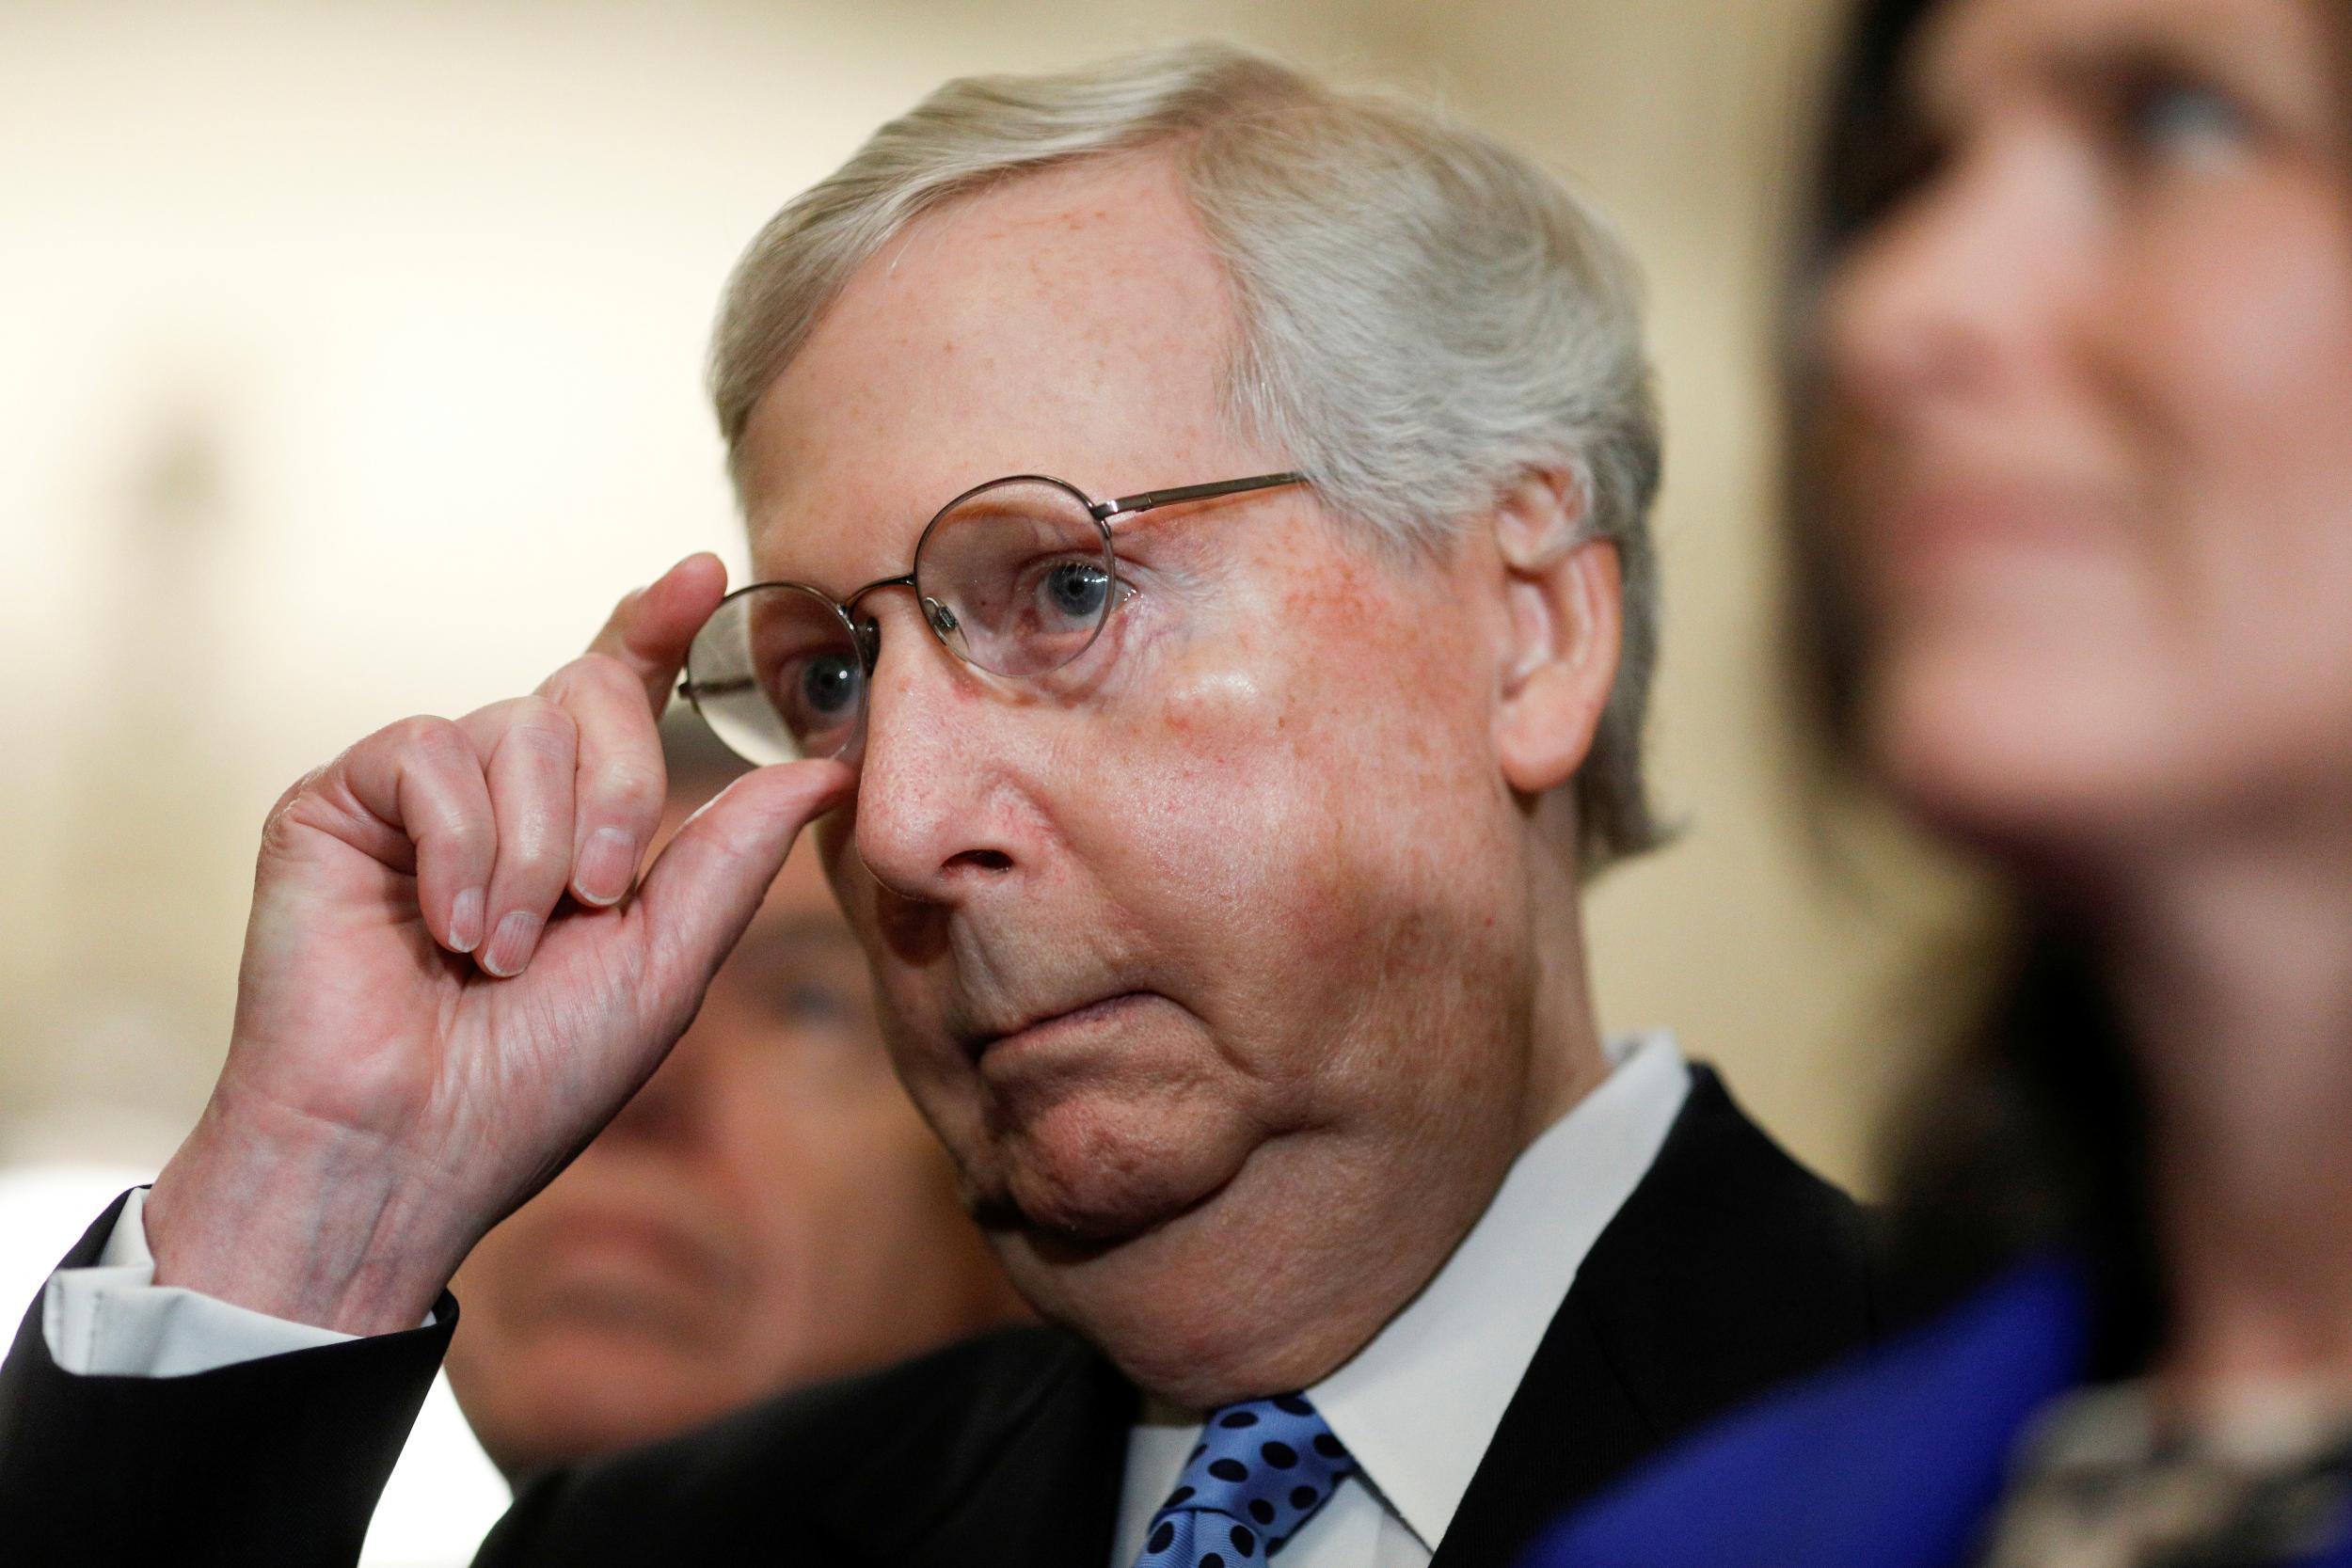 A premature obituary for the career of Mitch McConnell